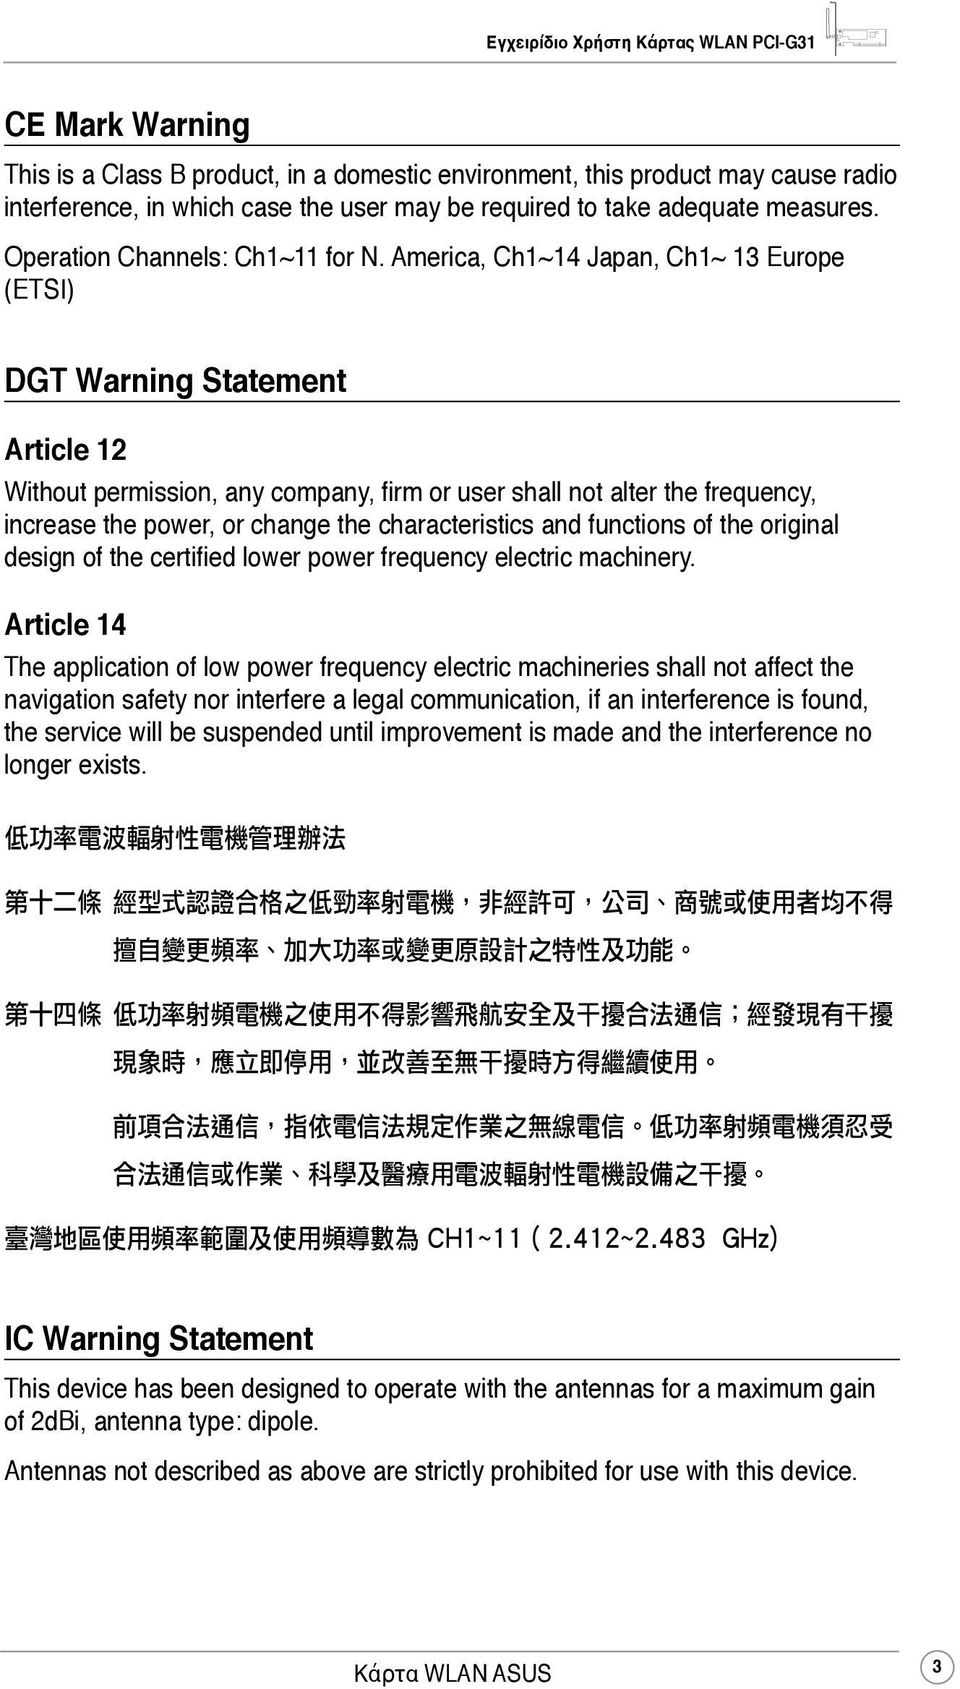 America, Ch1~14 Japan, Ch1~ 13 Europe (ETSI) DGT Warning Statement Article 12 Without permission, any company, firm or user shall not alter the frequency, increase the power, or change the